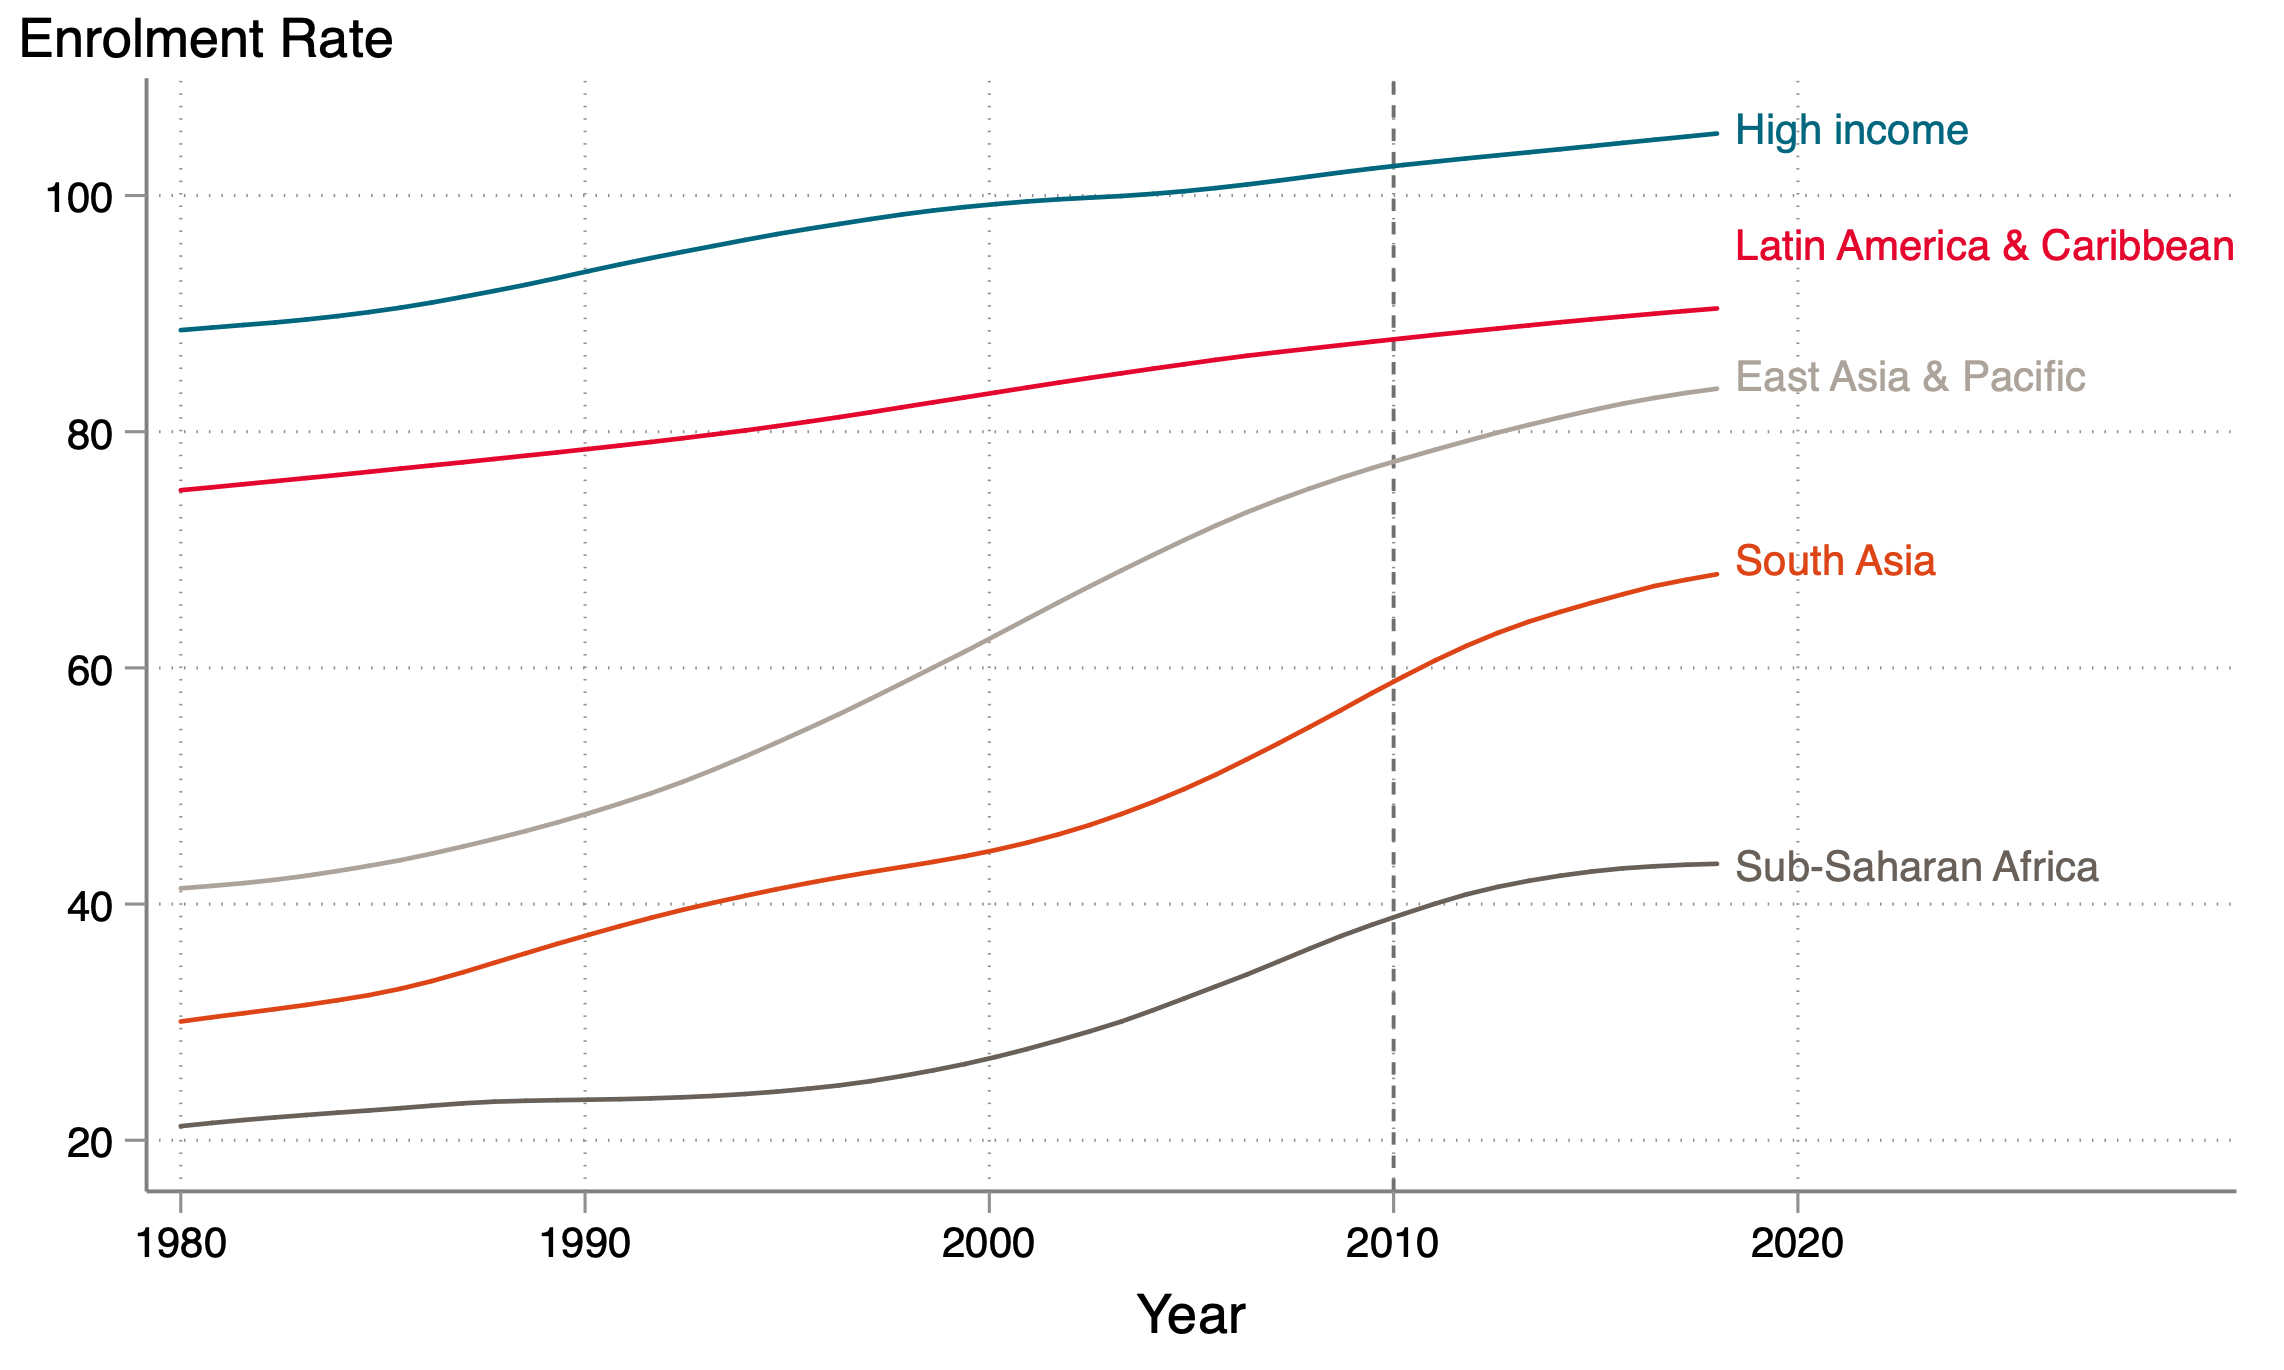 Comparing gross secondary enrolment rate for high income, latin america and caribbean, east asia and pacific, south asia, and sub-saharan africa (in descending order of rate).